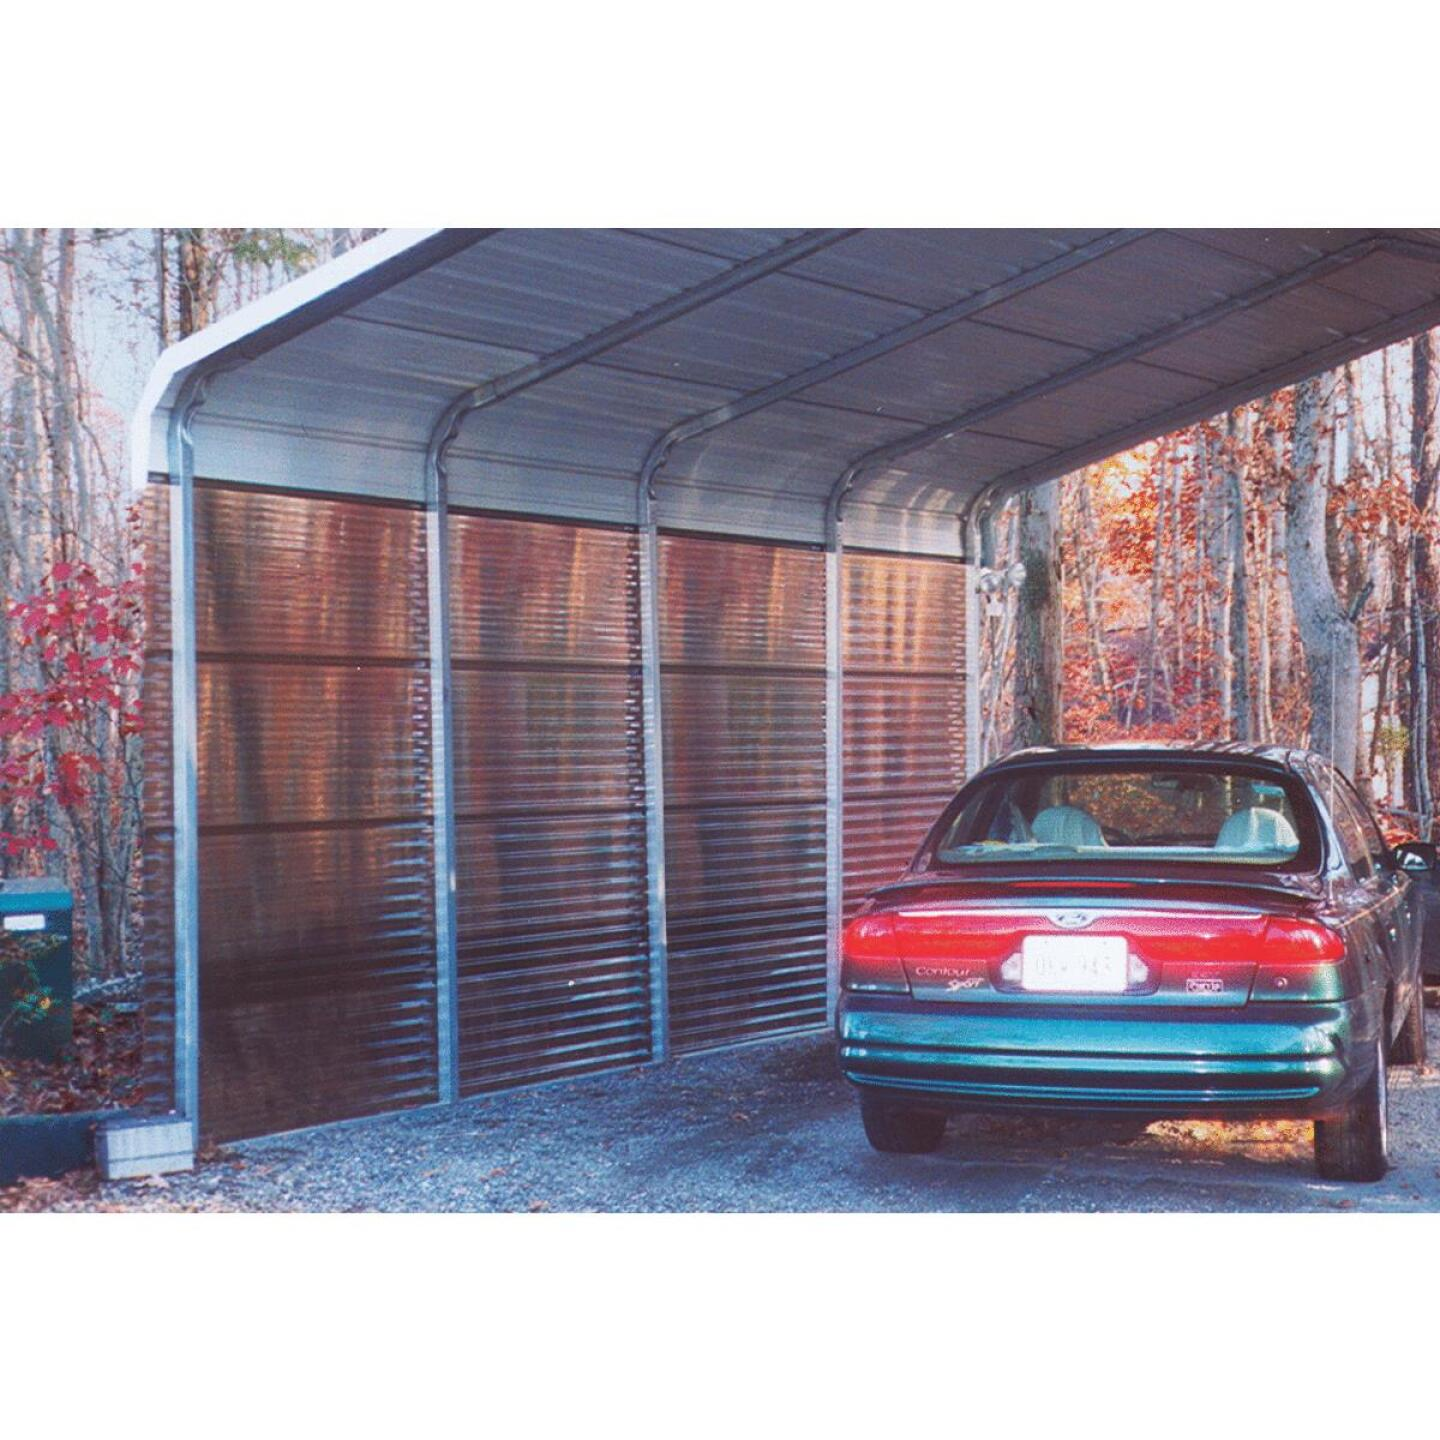 Tuftex PolyCarb 26 In. x 8 Ft. Translucent Smoke Square Wave Polycarb & Vinyl Corrugated Panels Image 3